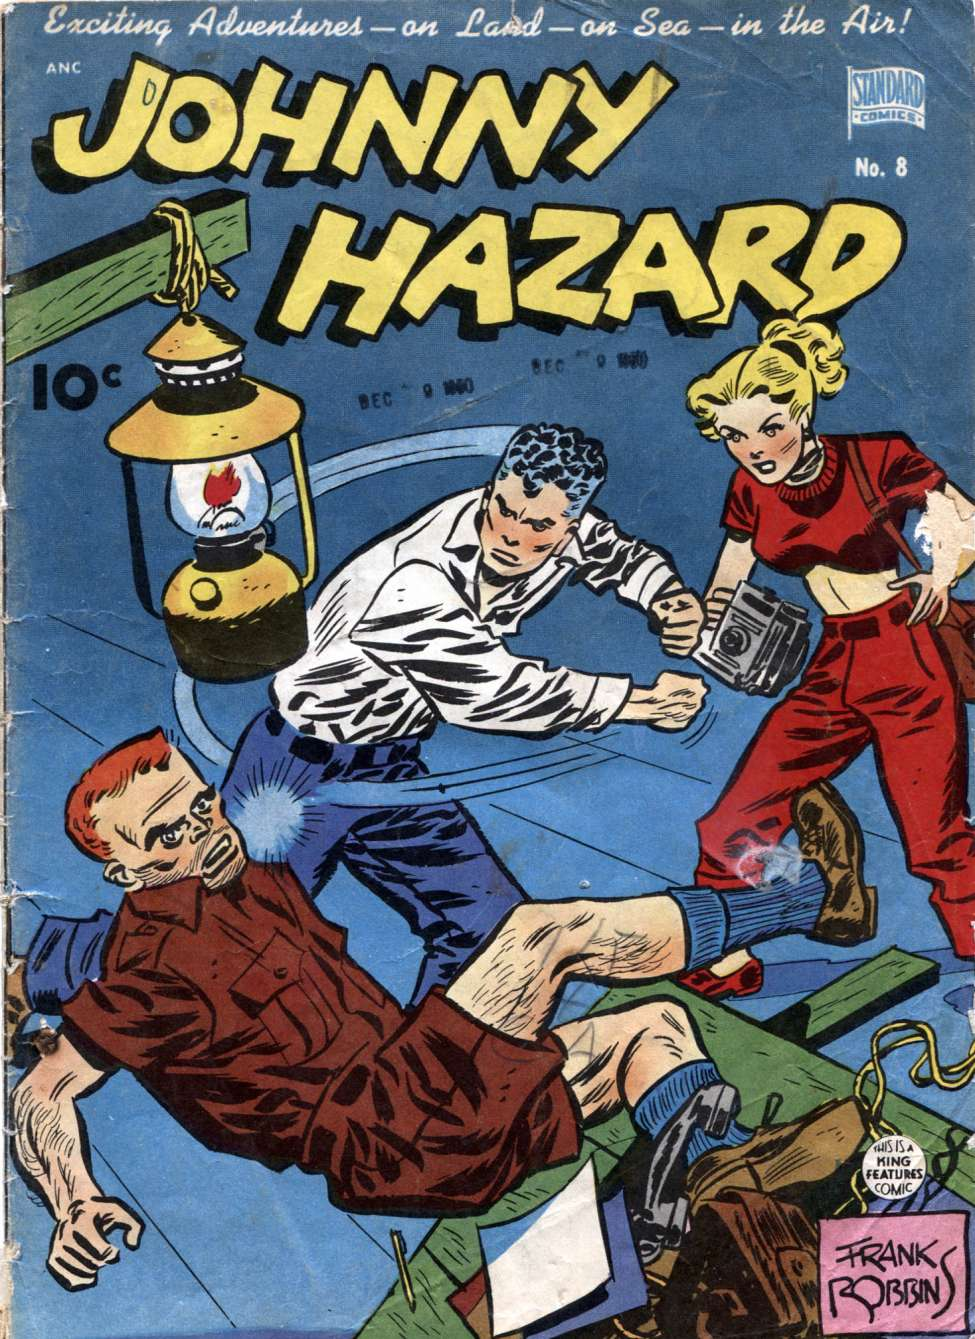 Johnny Hazard #8, Standard